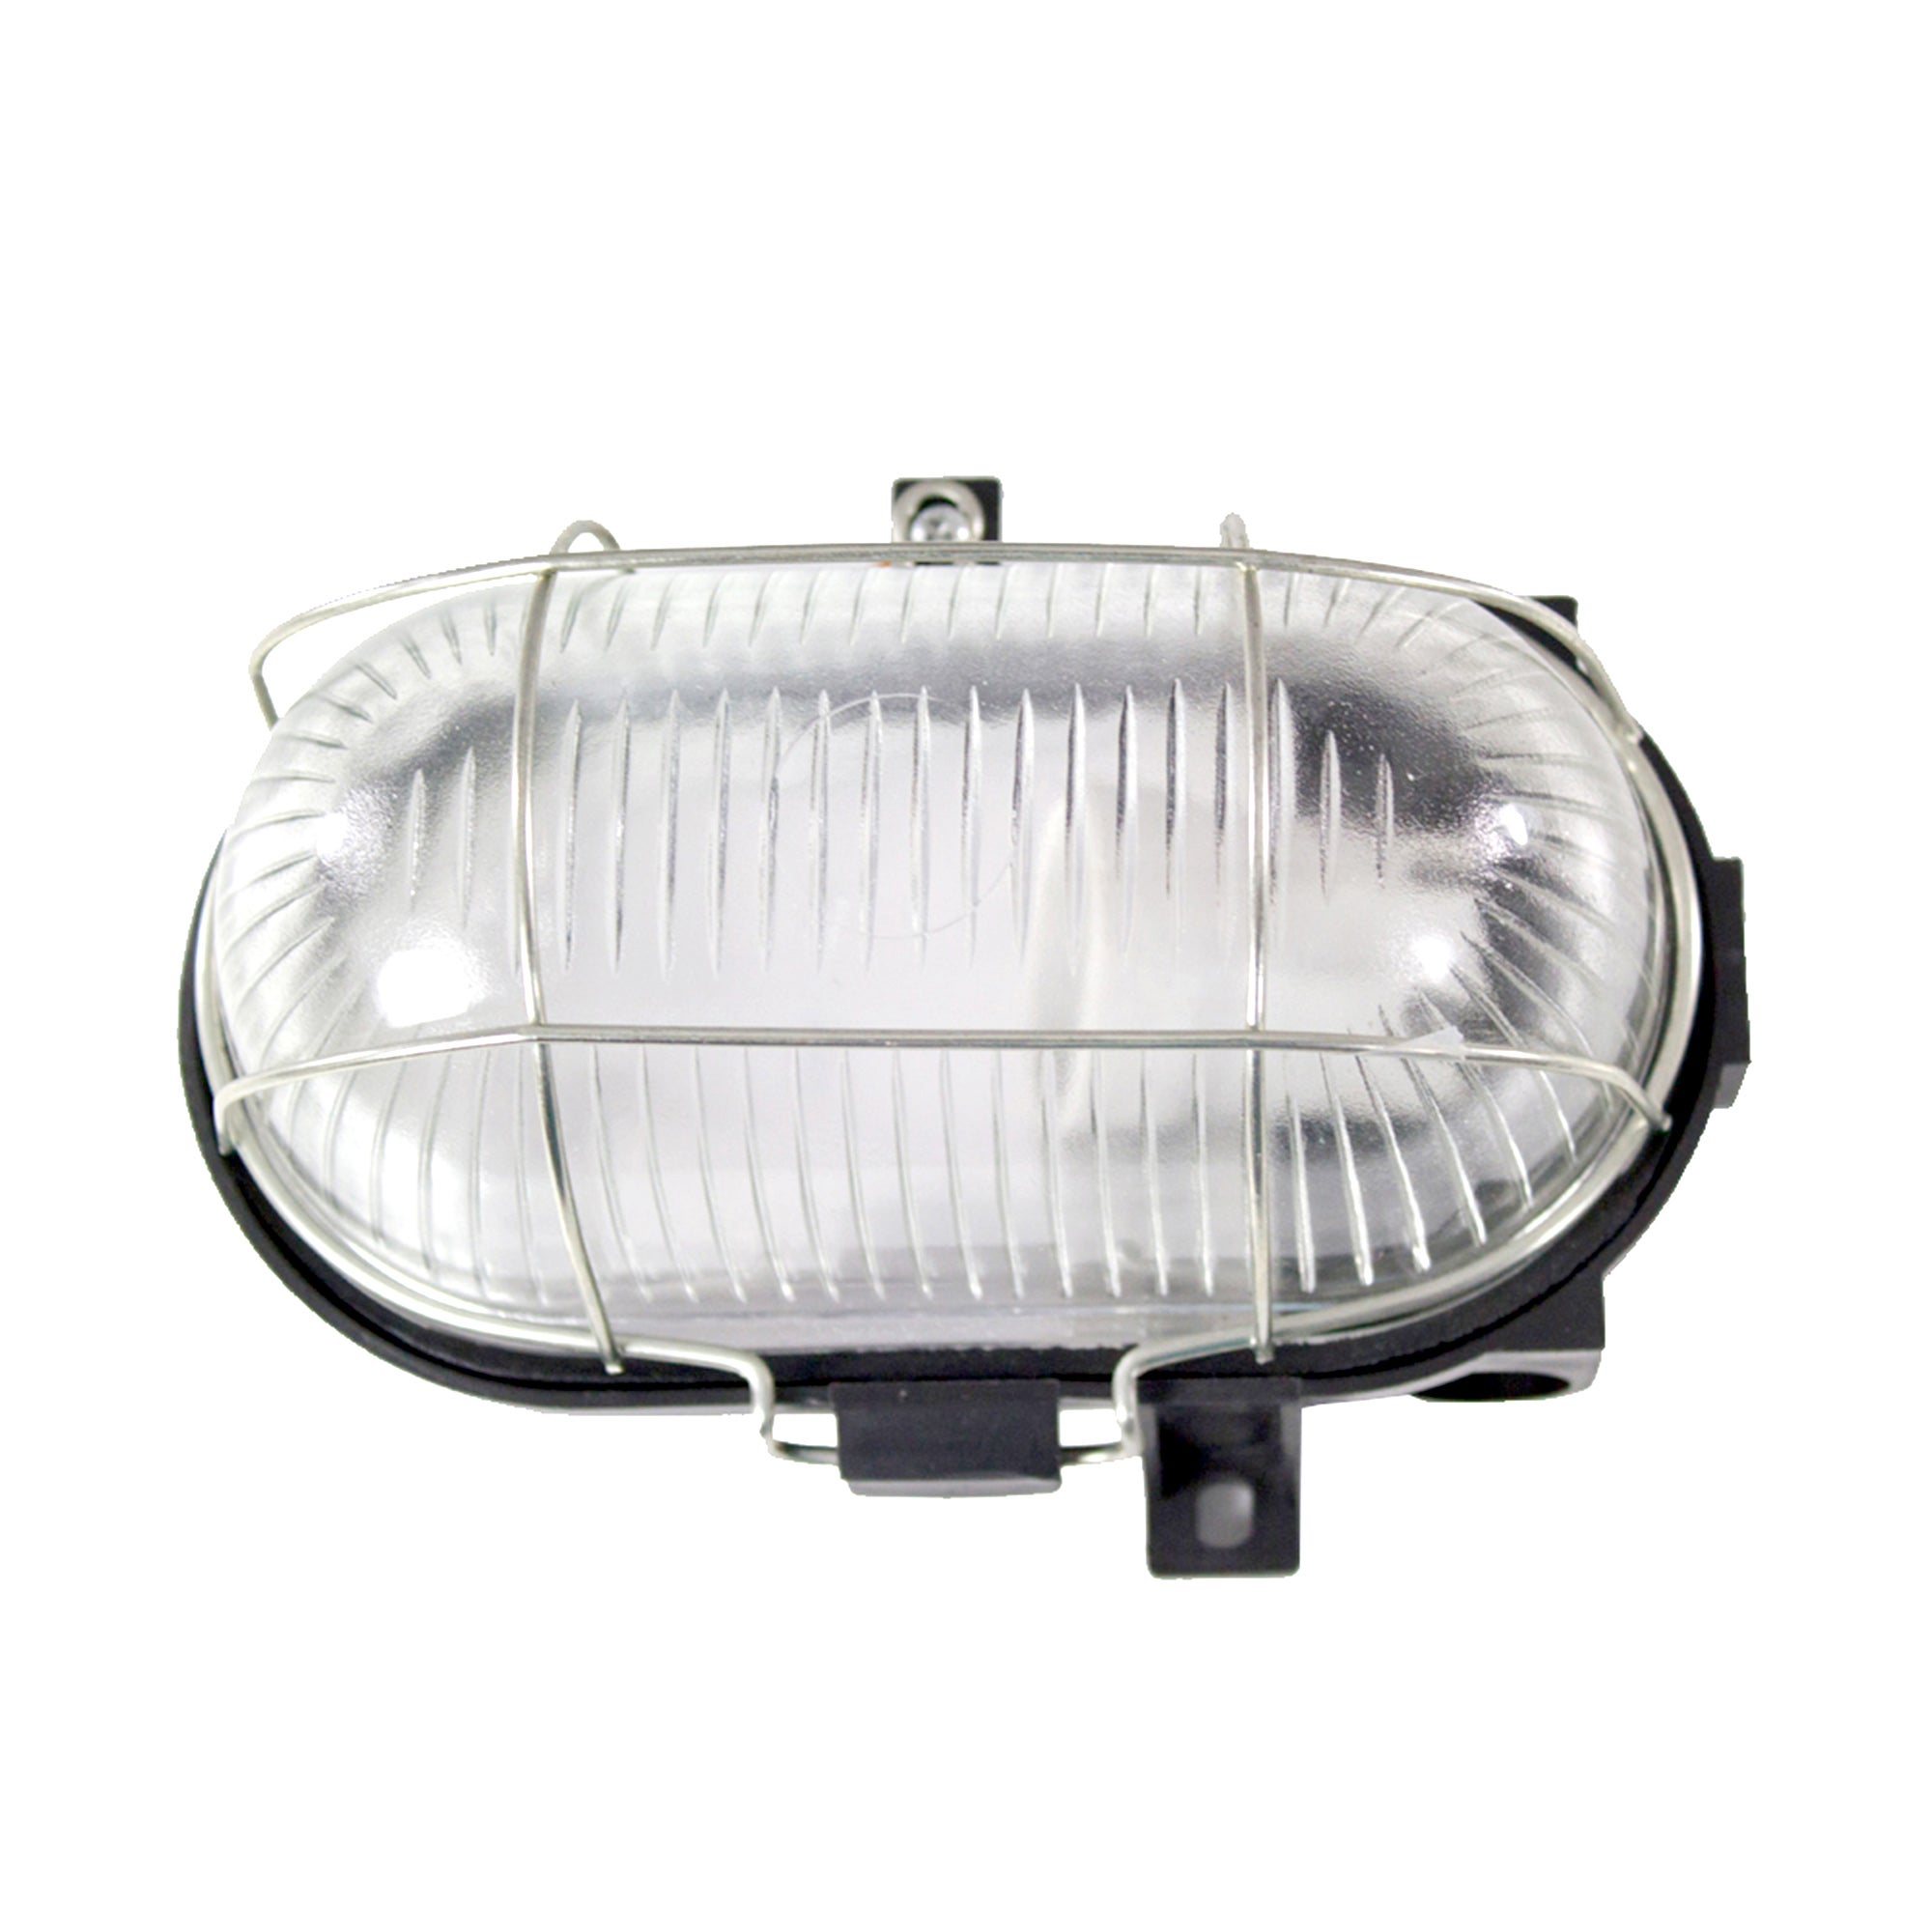 Outdoor Oval Bulkhead Light